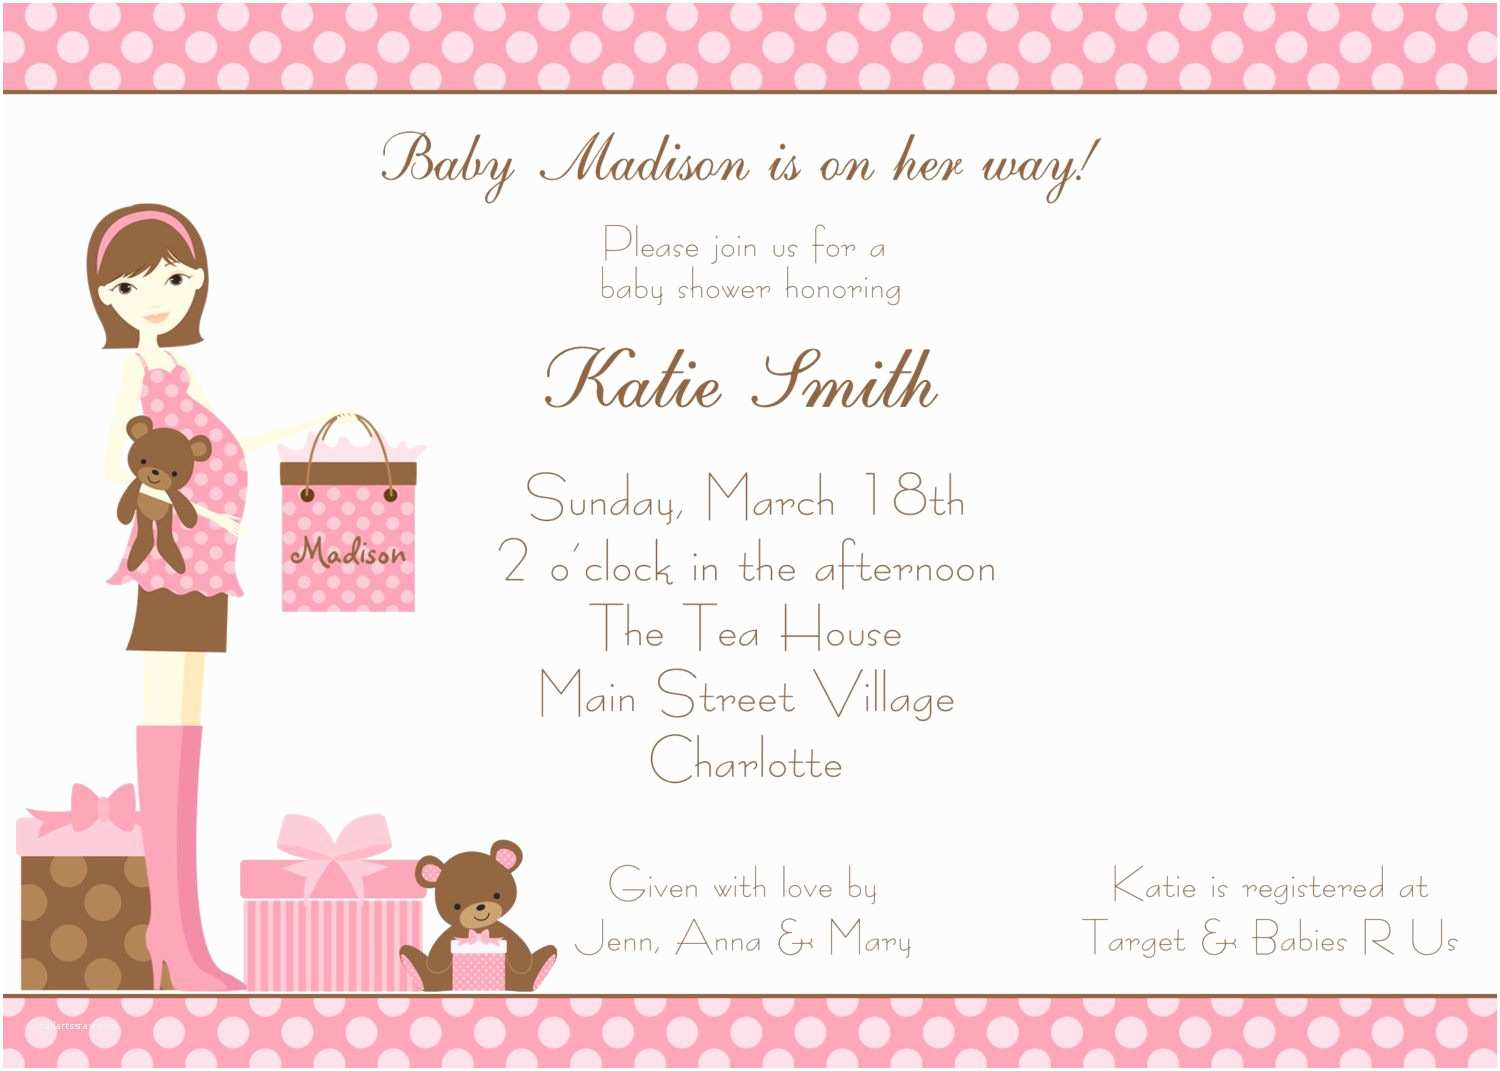 Baby Shower Invitations Girl Baby Shower Invitation Baby Girl Shower Invitations